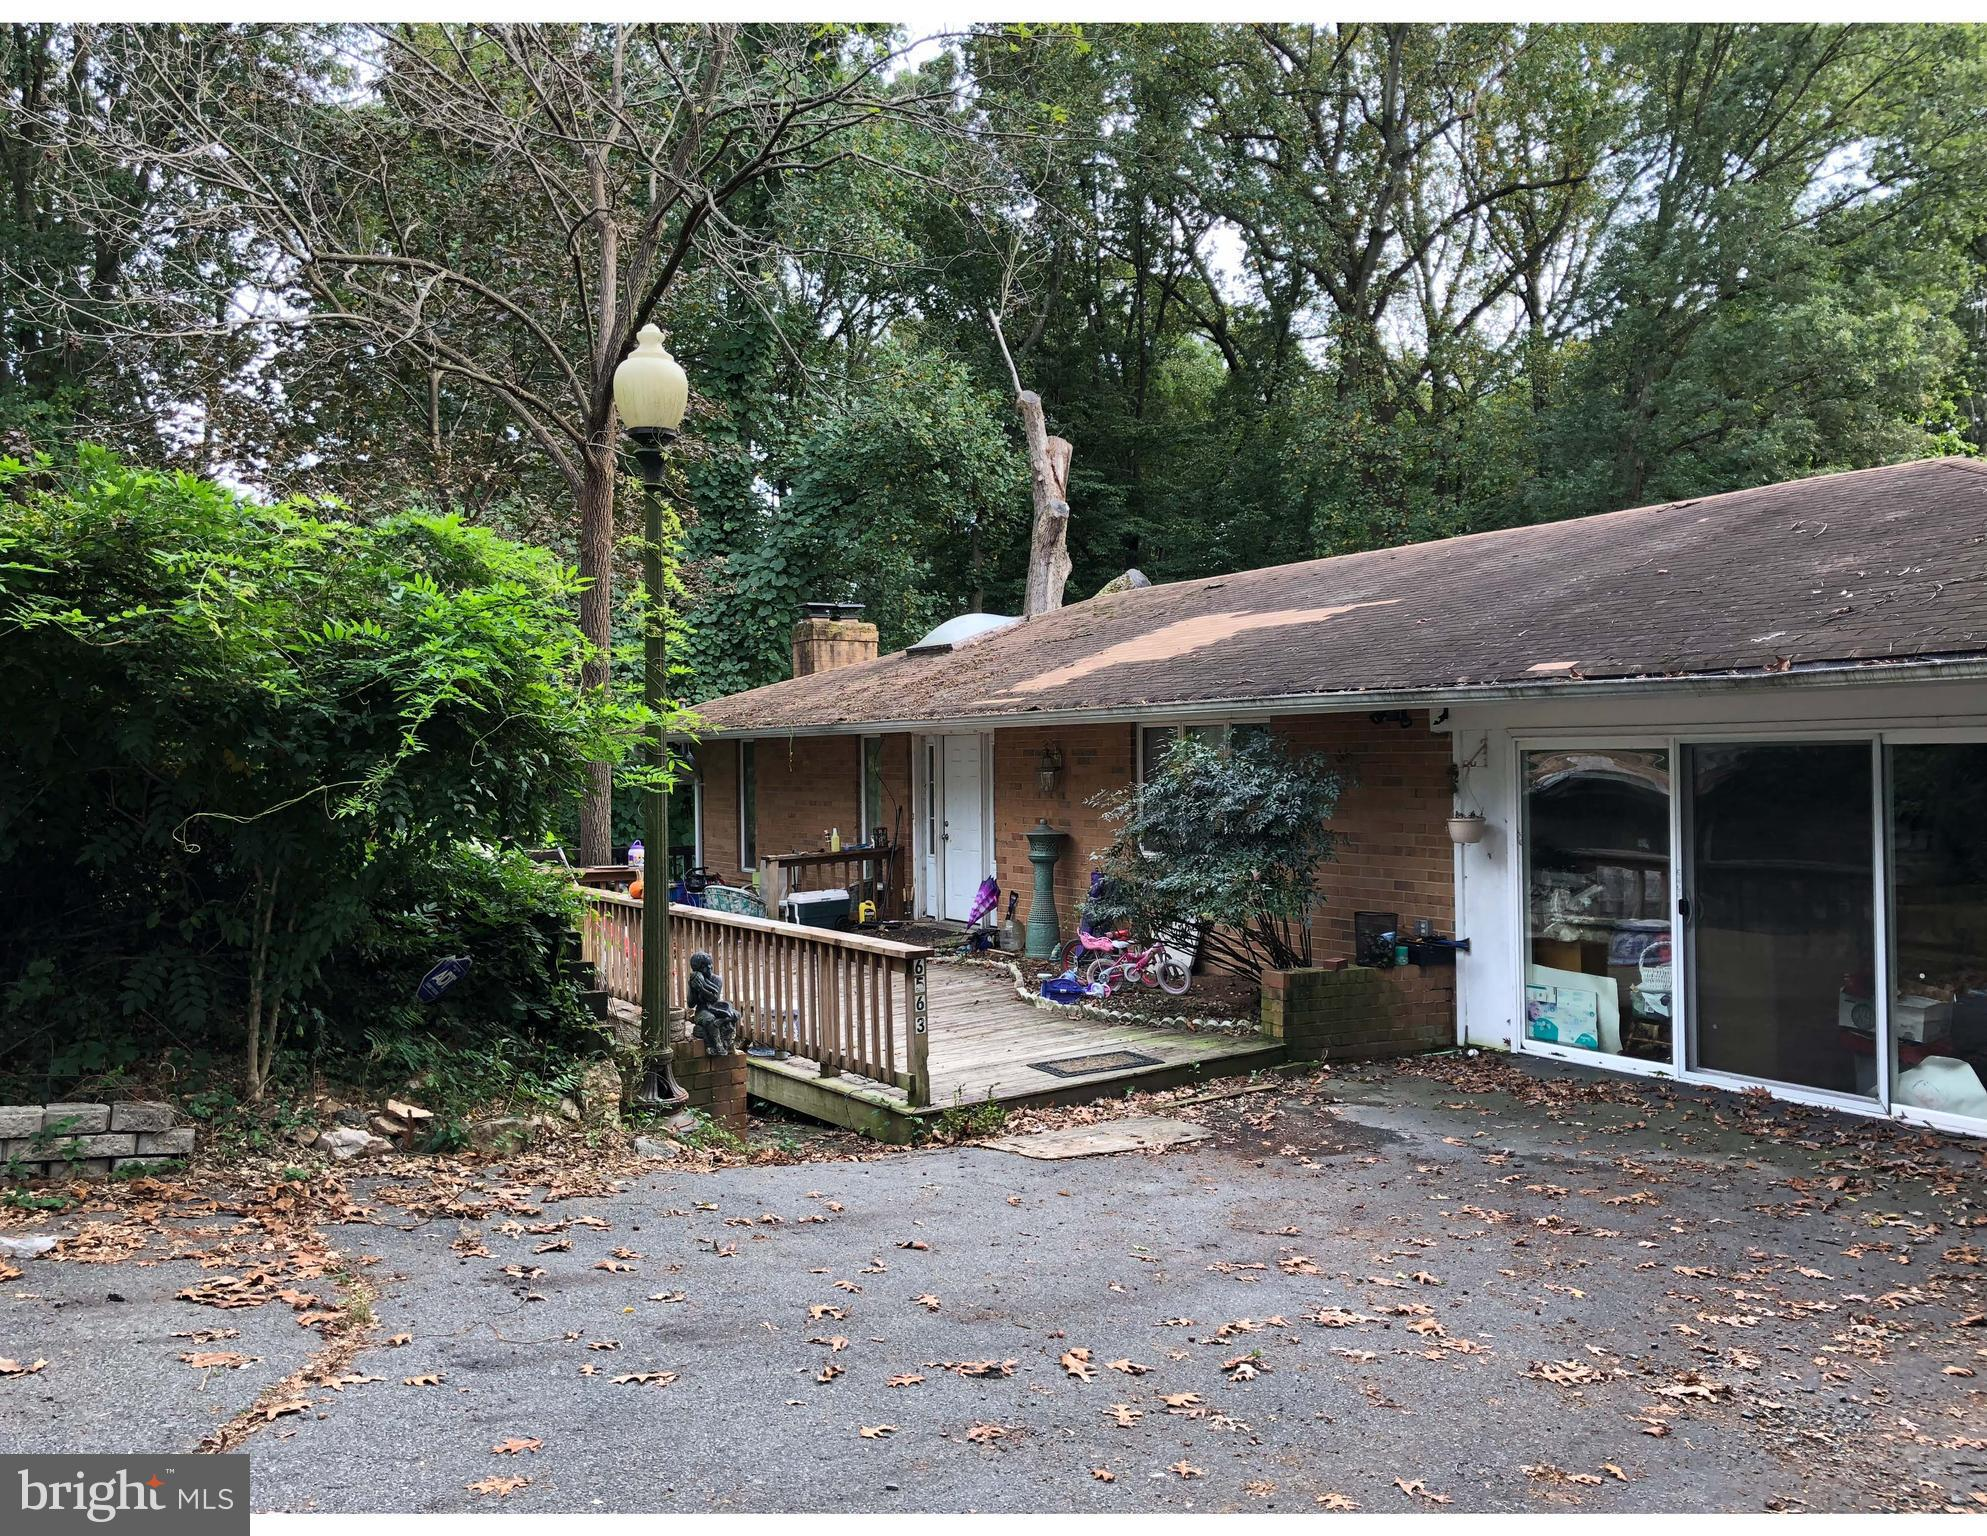 Build out, Build up, Build new! Welcome Investors! Home being sold AS-IS. Conventional & Cash offer accepted, 2 Level home on .43 acres. No HOA, HVAC